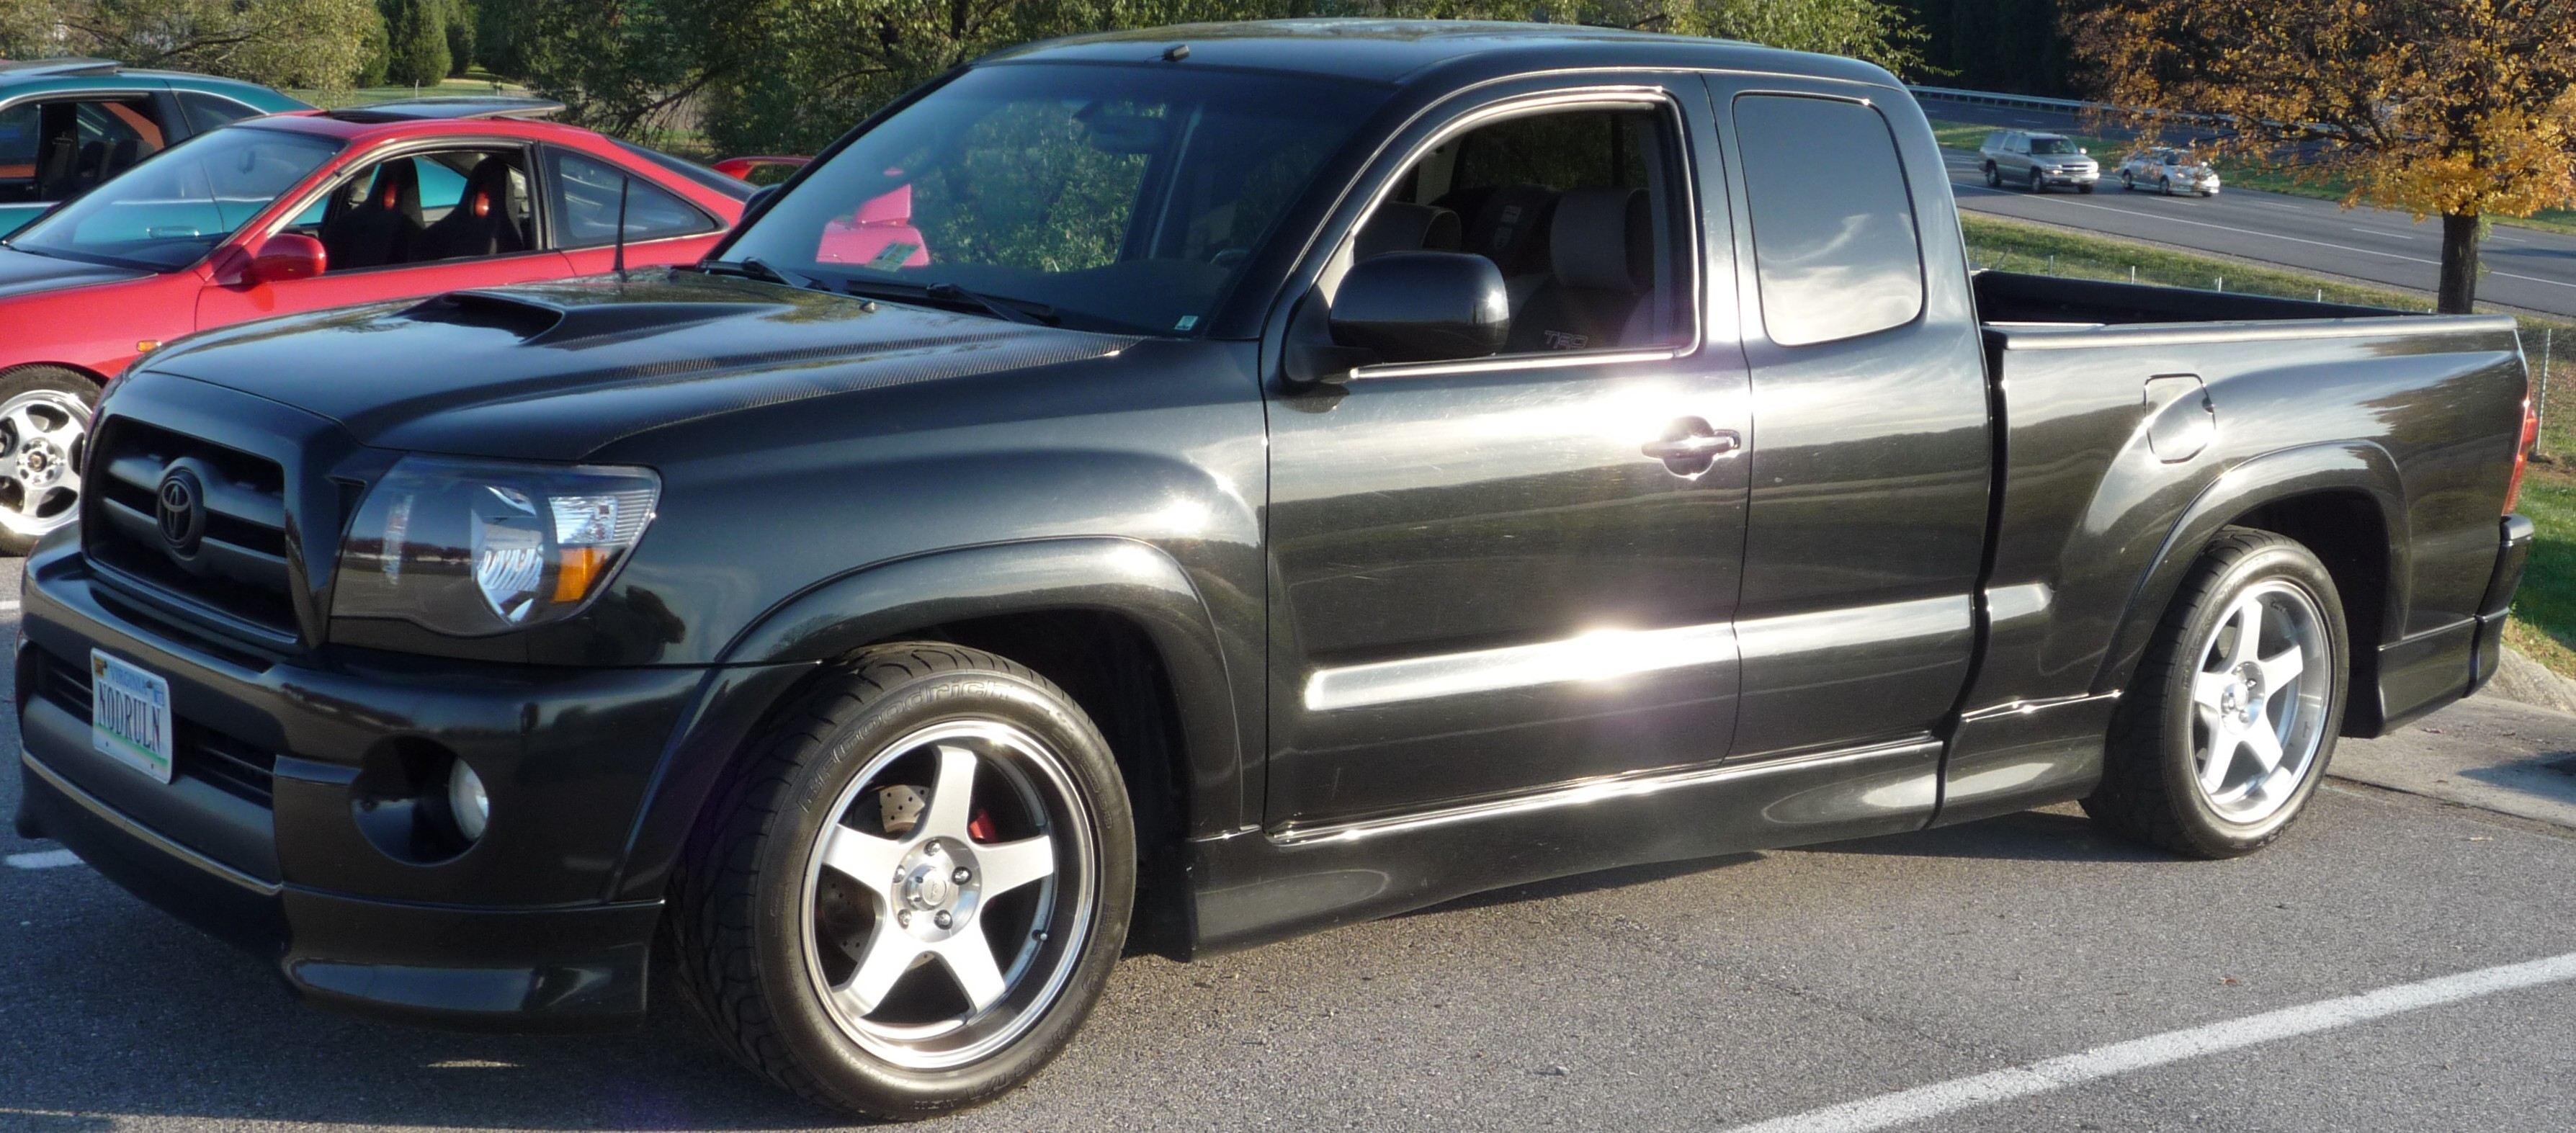 2005 toyota tacoma x runner 1 4 mile drag racing timeslip specs 0 60. Black Bedroom Furniture Sets. Home Design Ideas